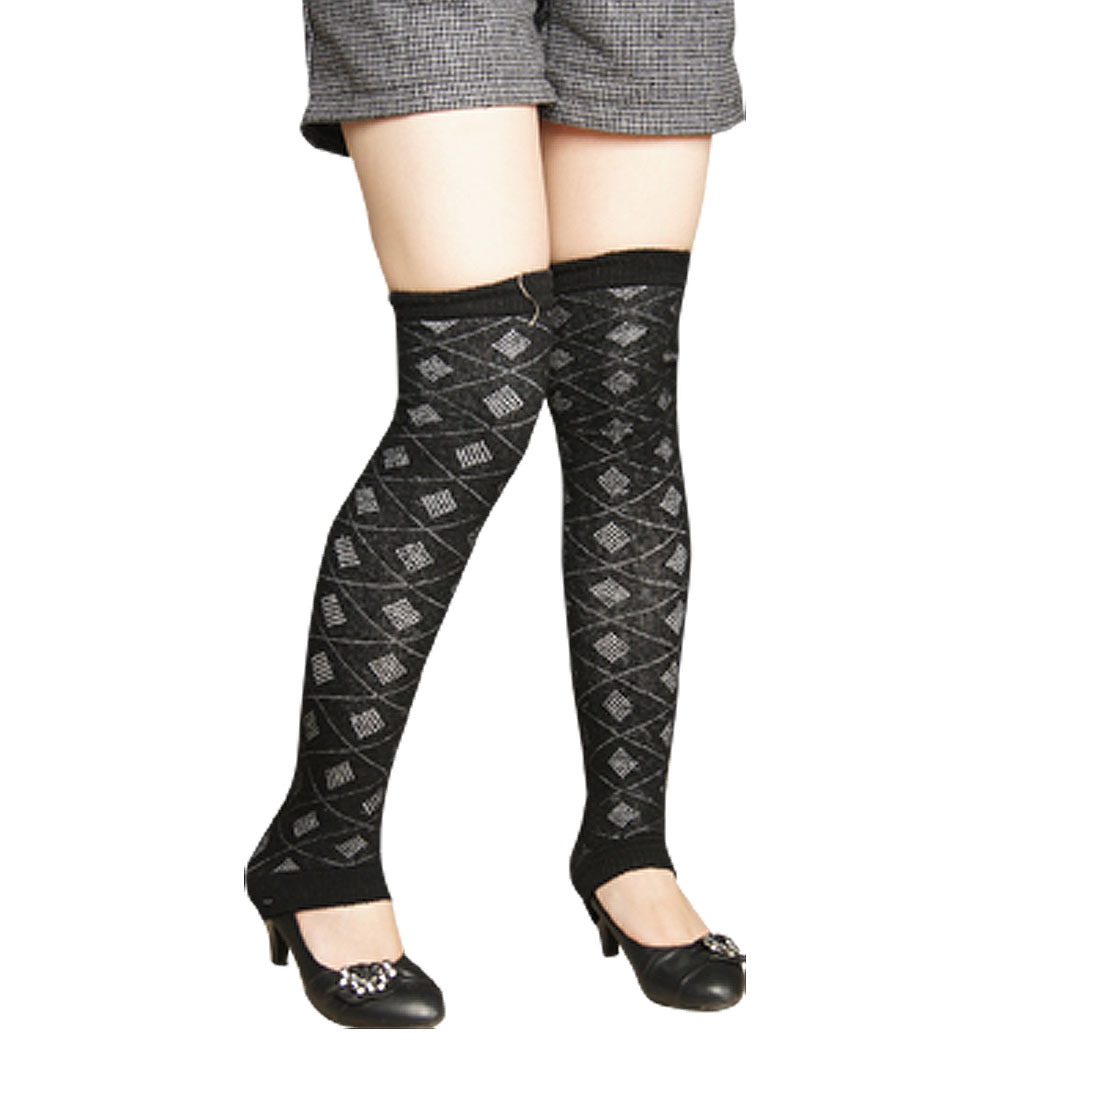 Women Pair Rhombus Pattern Knit Crochet Knee High Leg Warmers Black